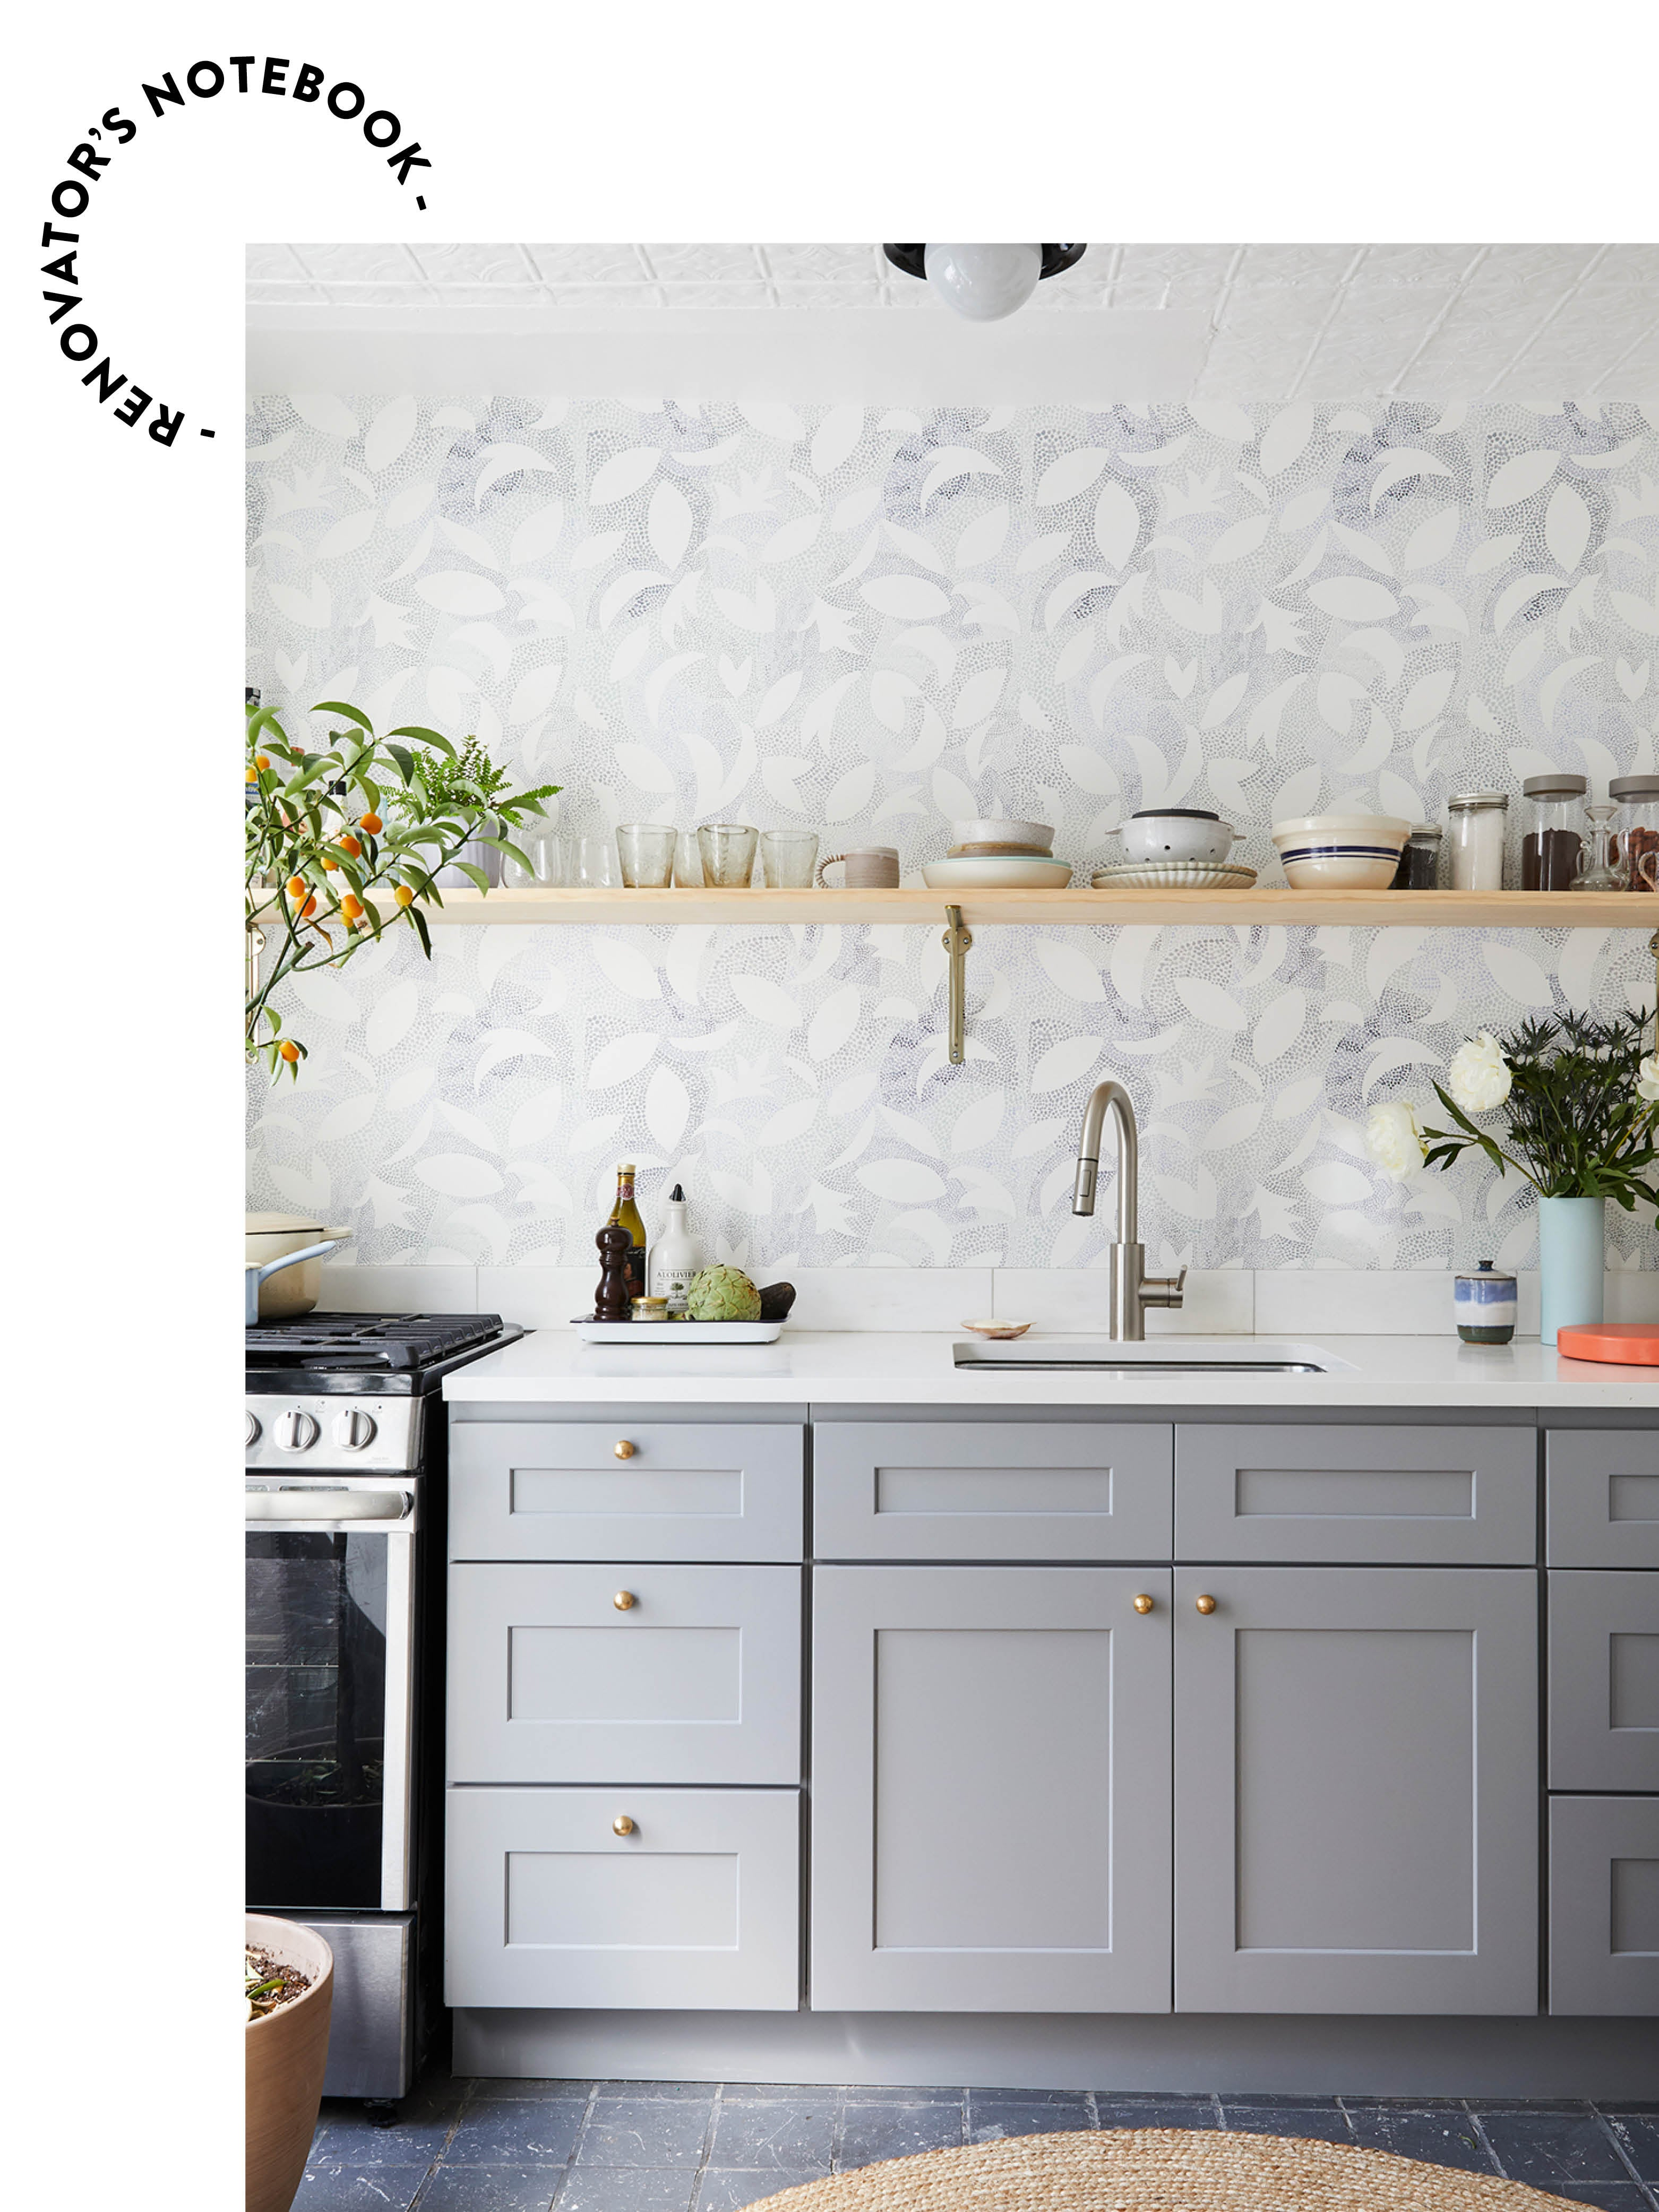 gray kitchen with open shelving and blue wallpaper